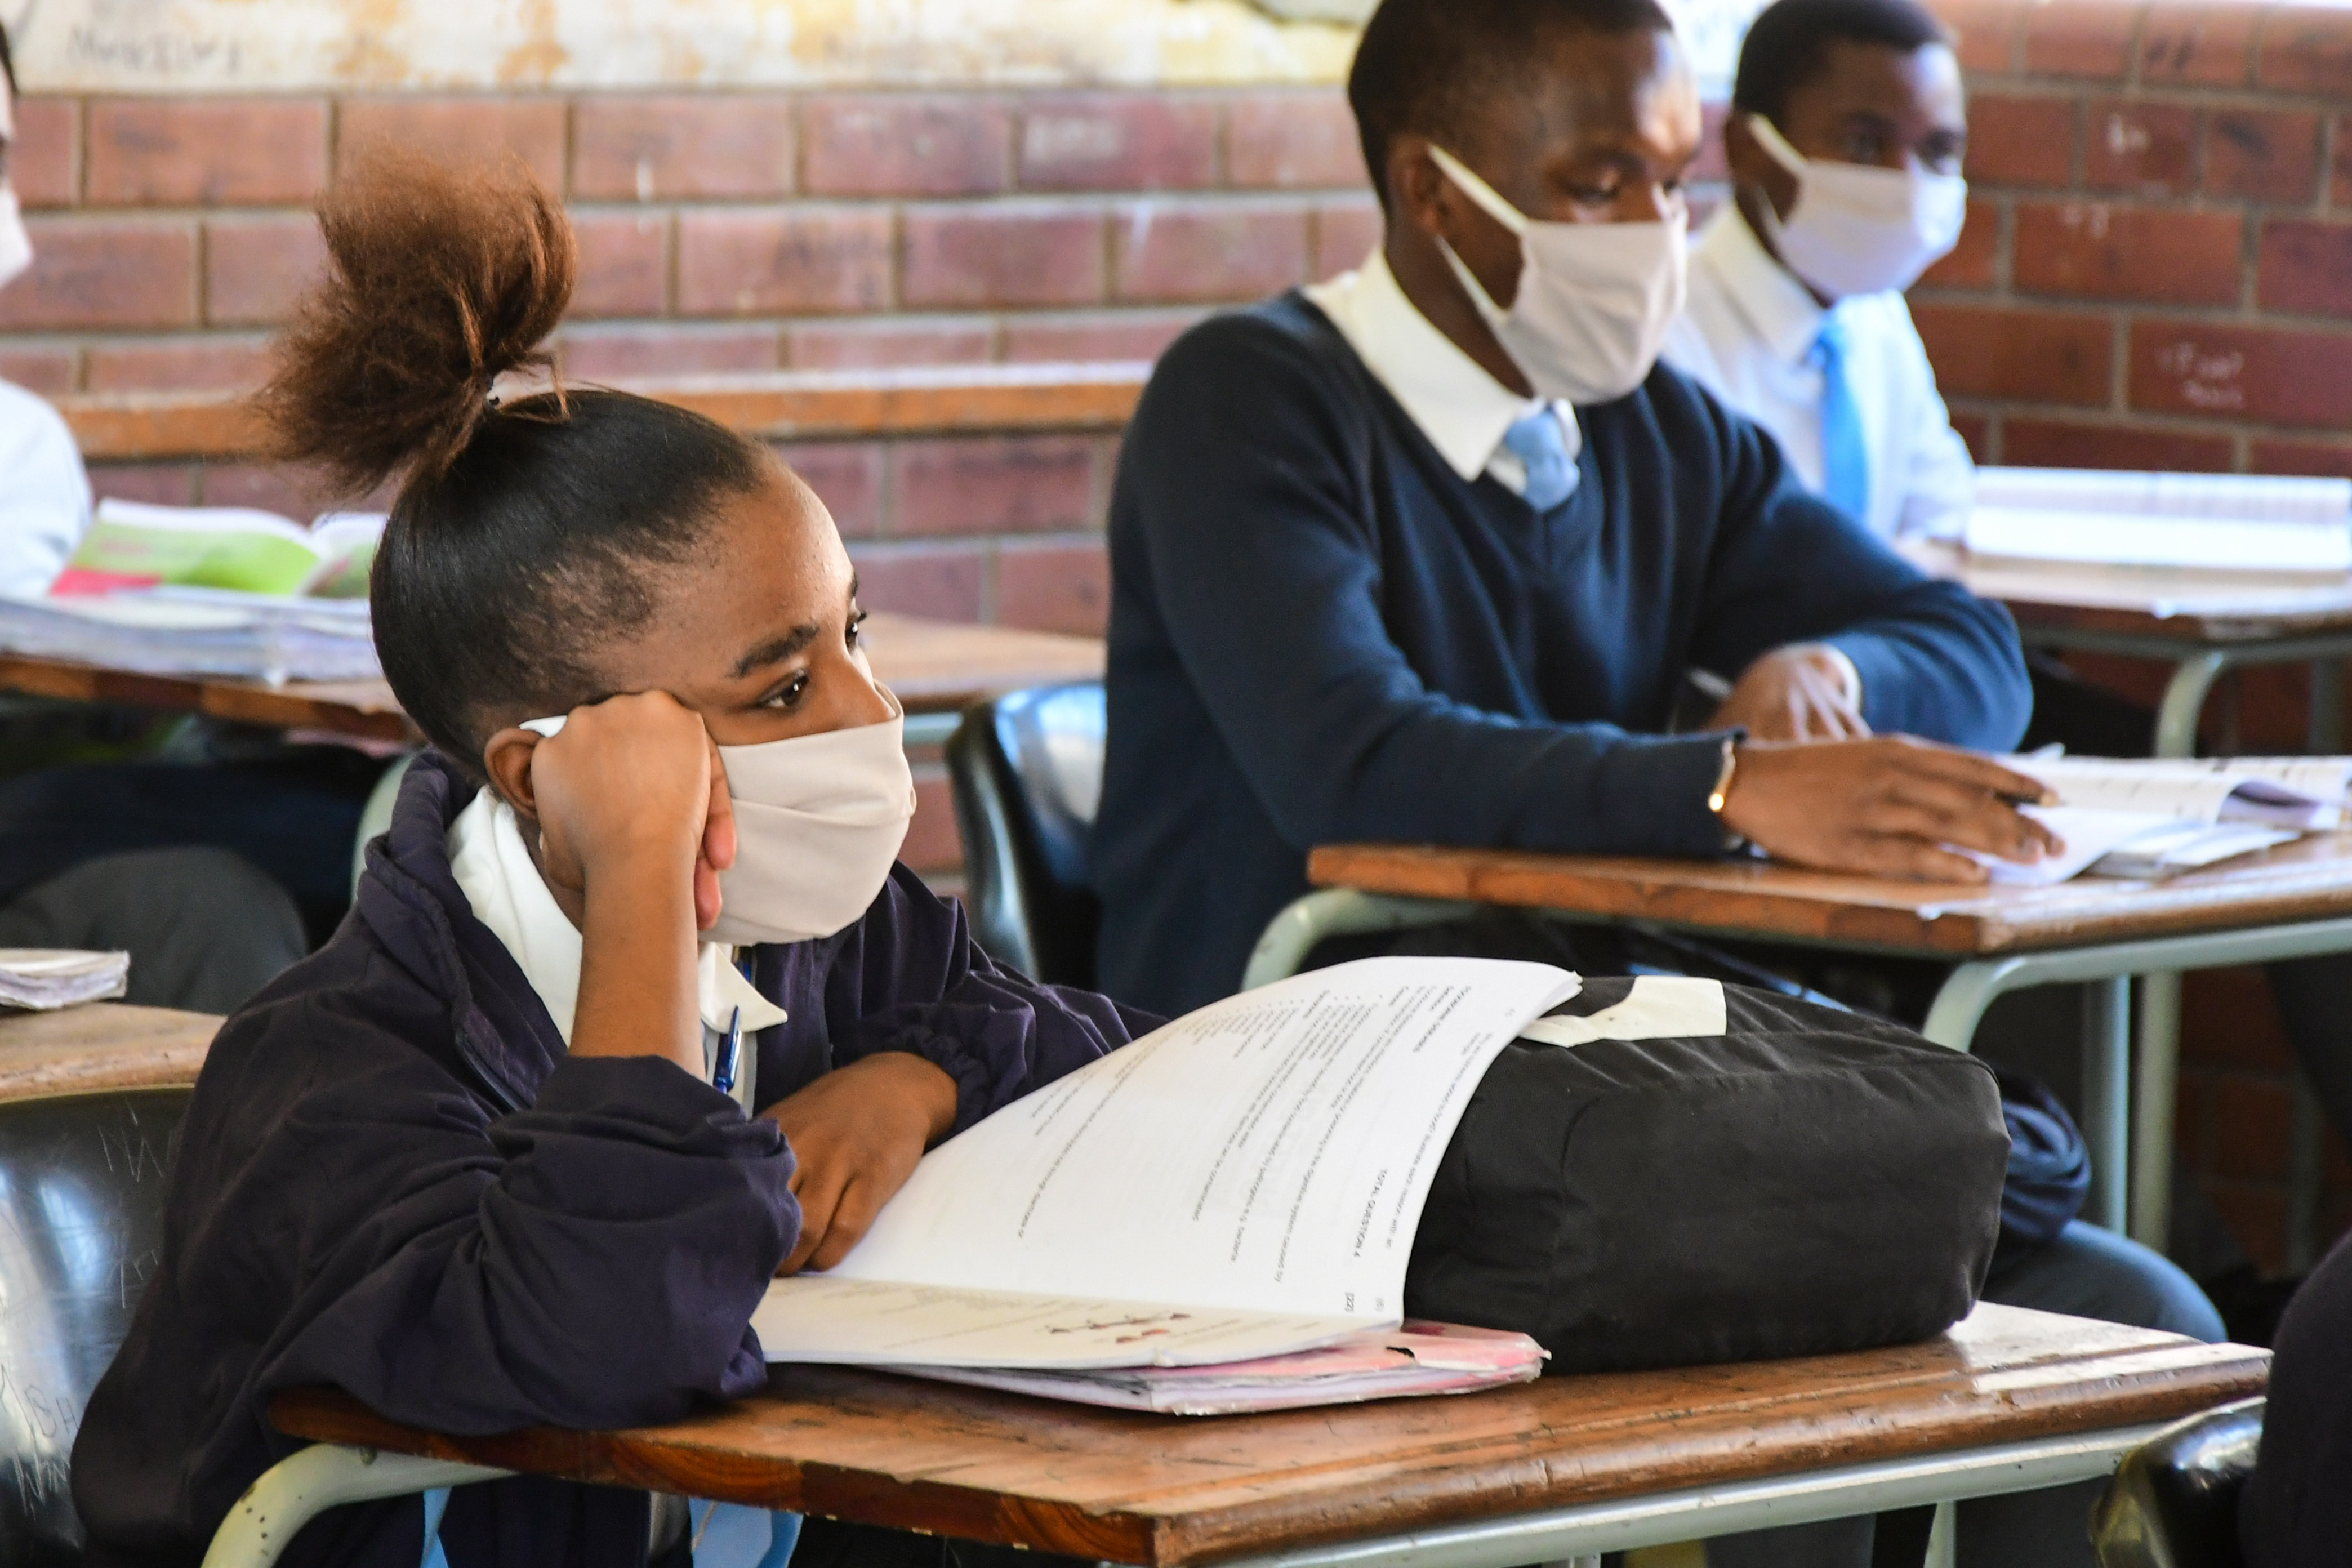 A student in a face mask sitting at a school desk with her head propped on her fist, Durban, South Africa, June 9, 2020.